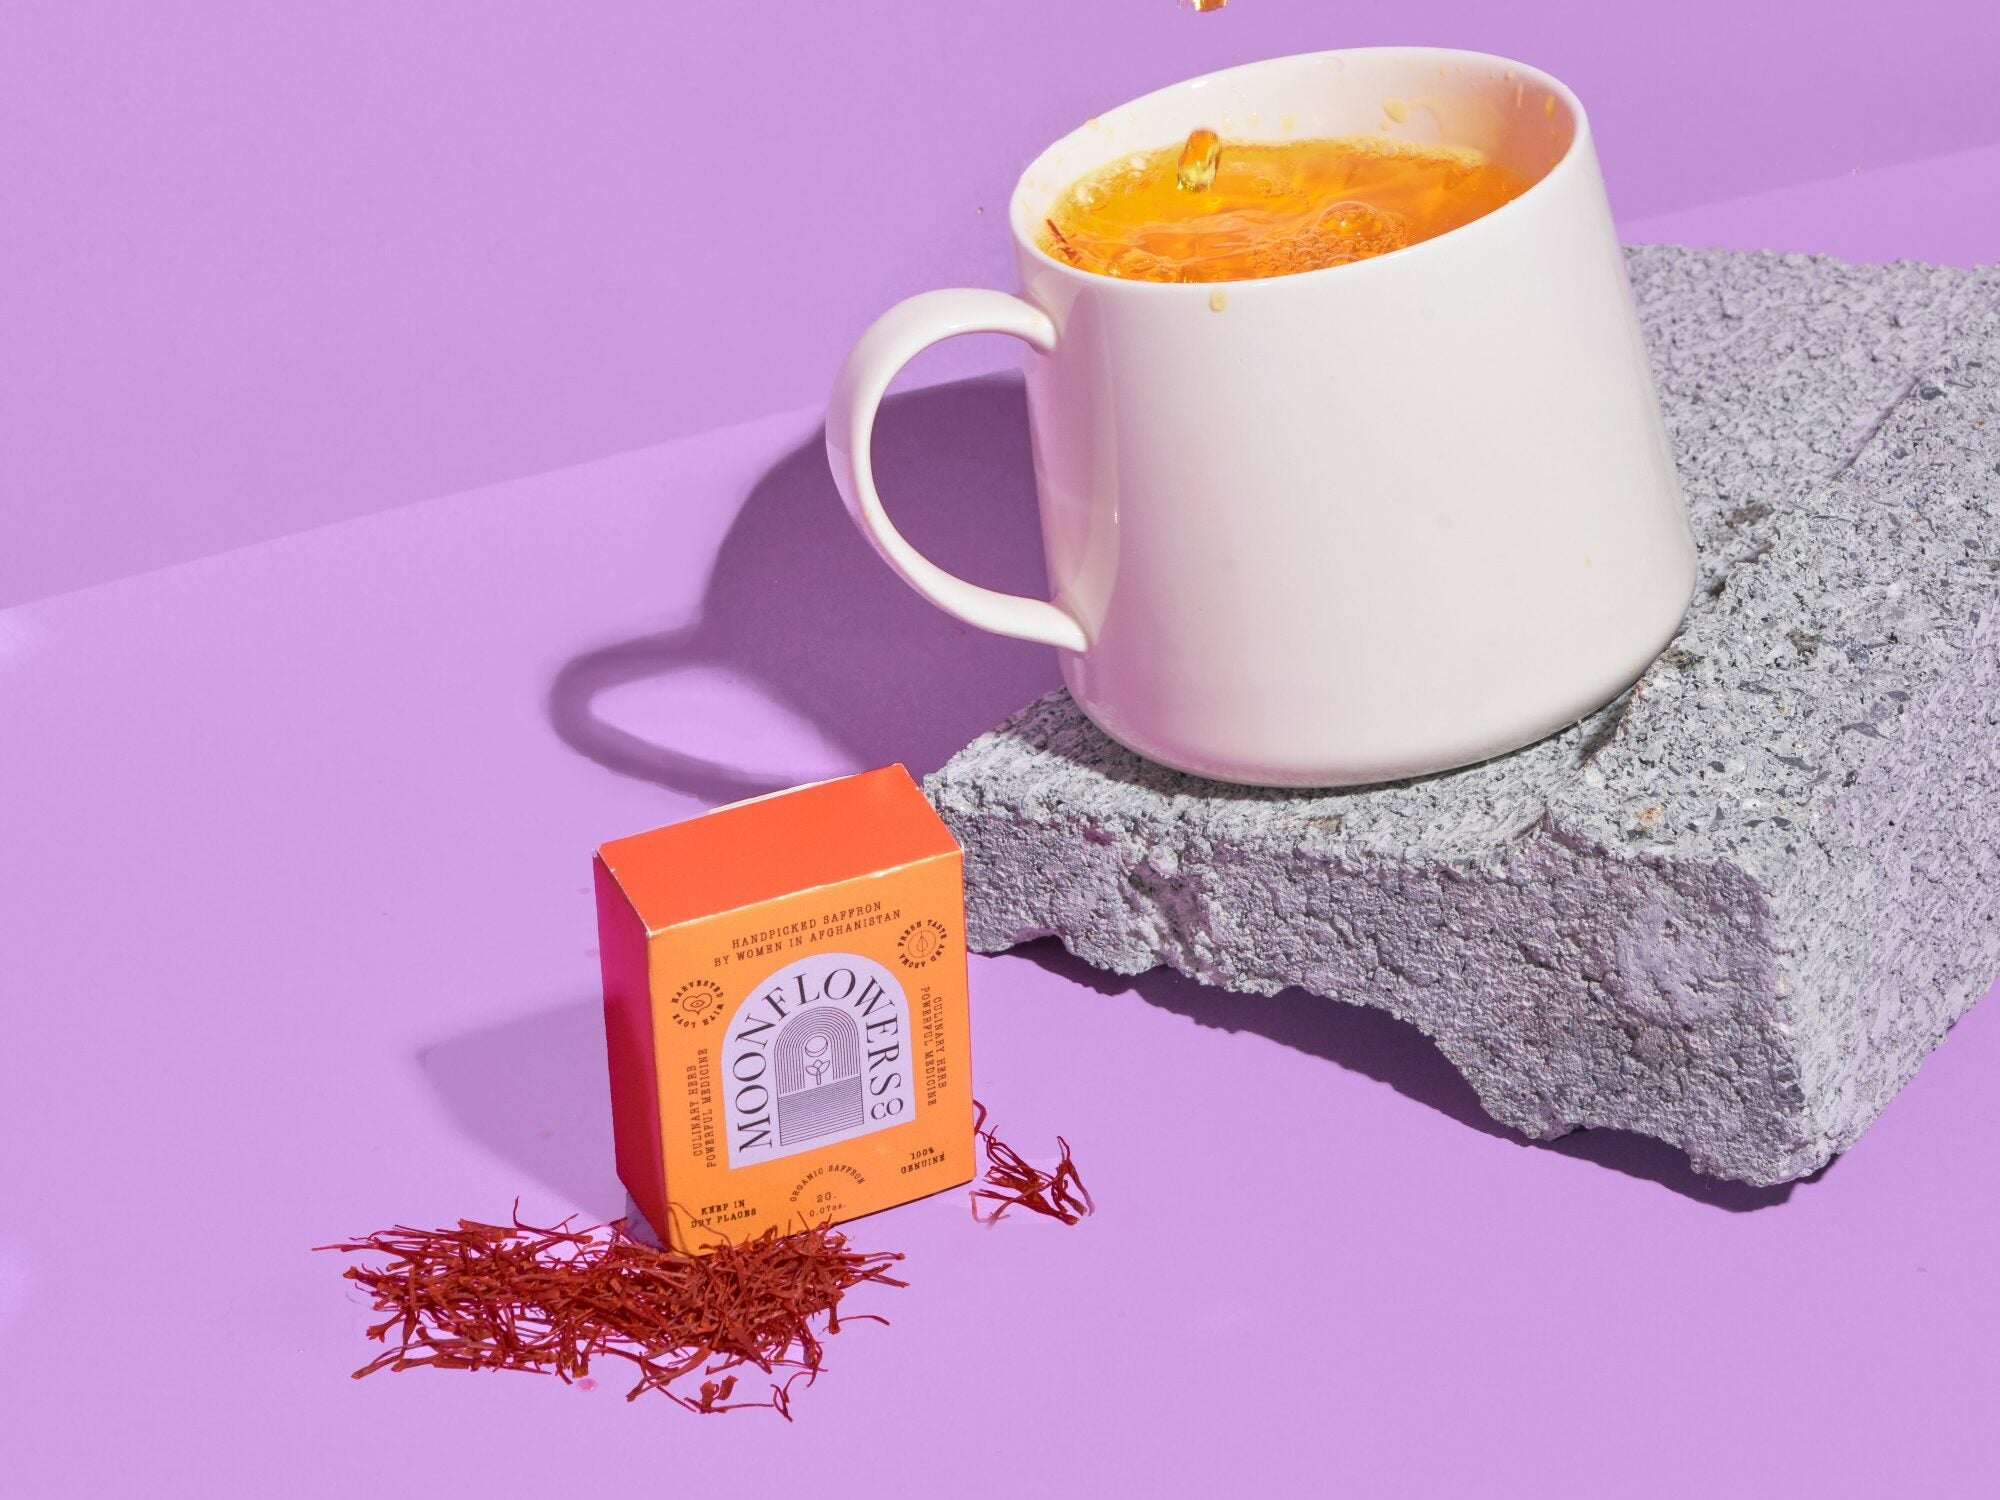 Saffron Tea made by flowers from Moonflower